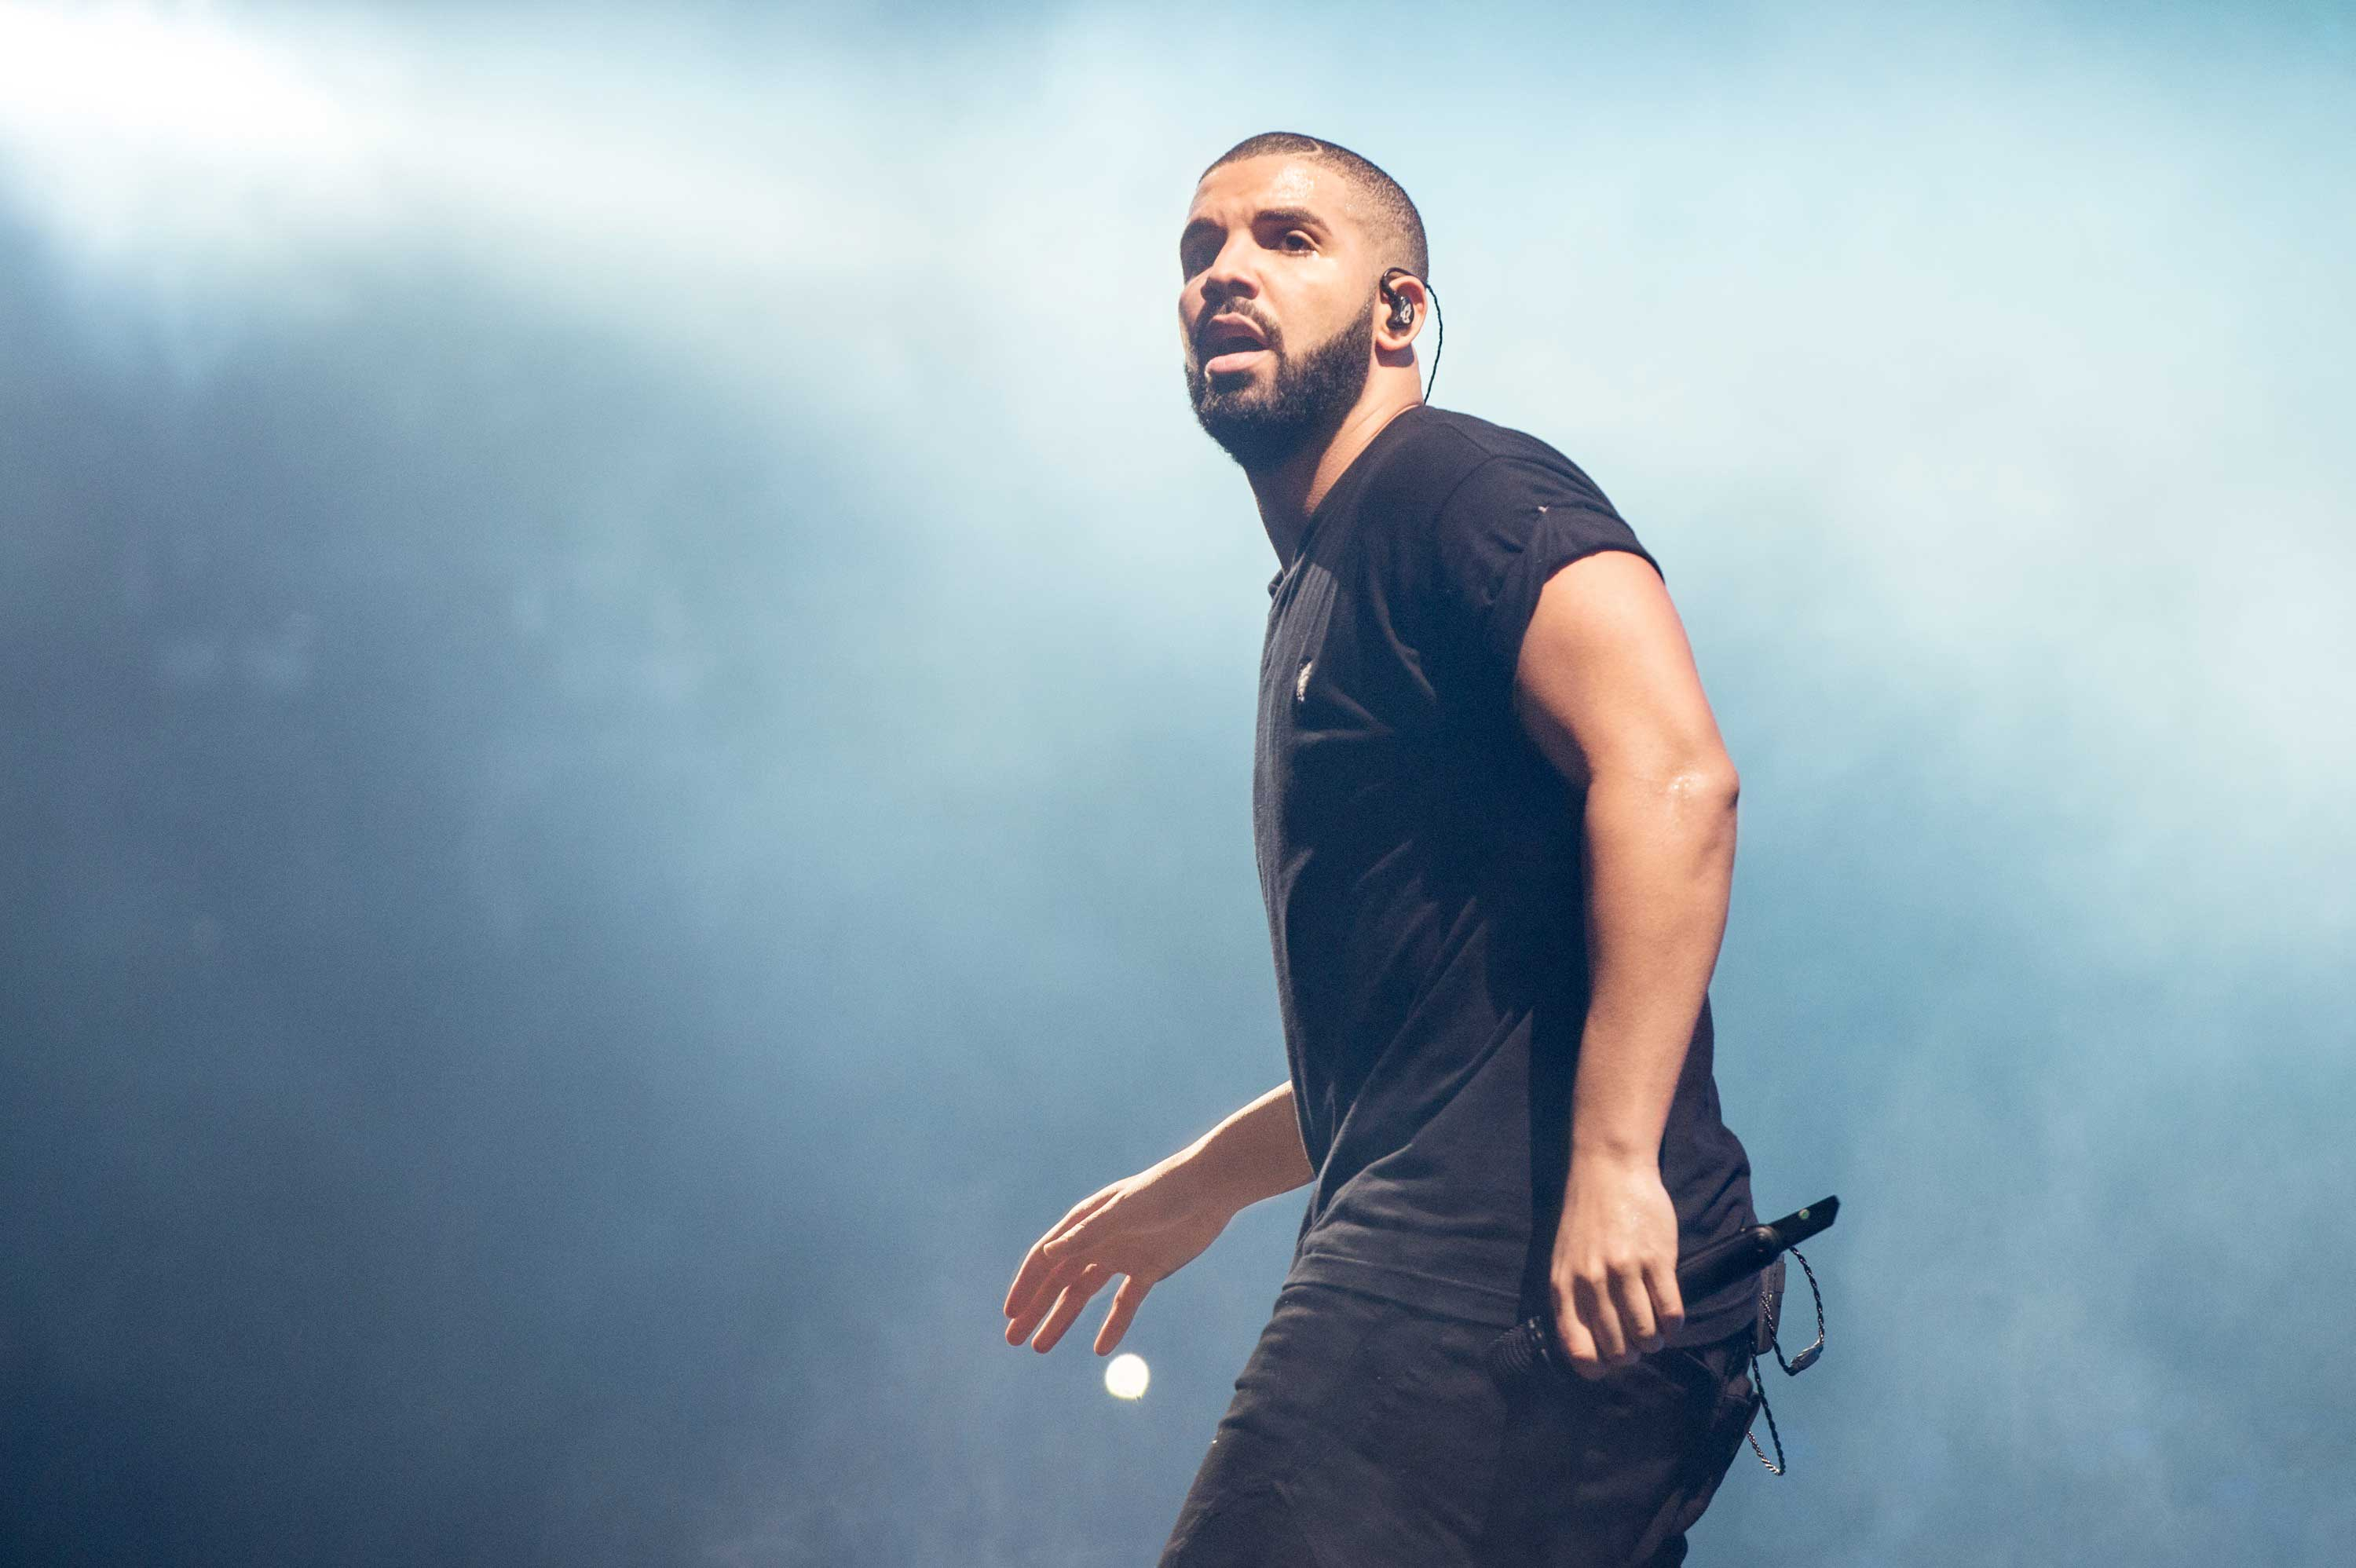 On Views, Drake offers a snapshot of his messy relationships